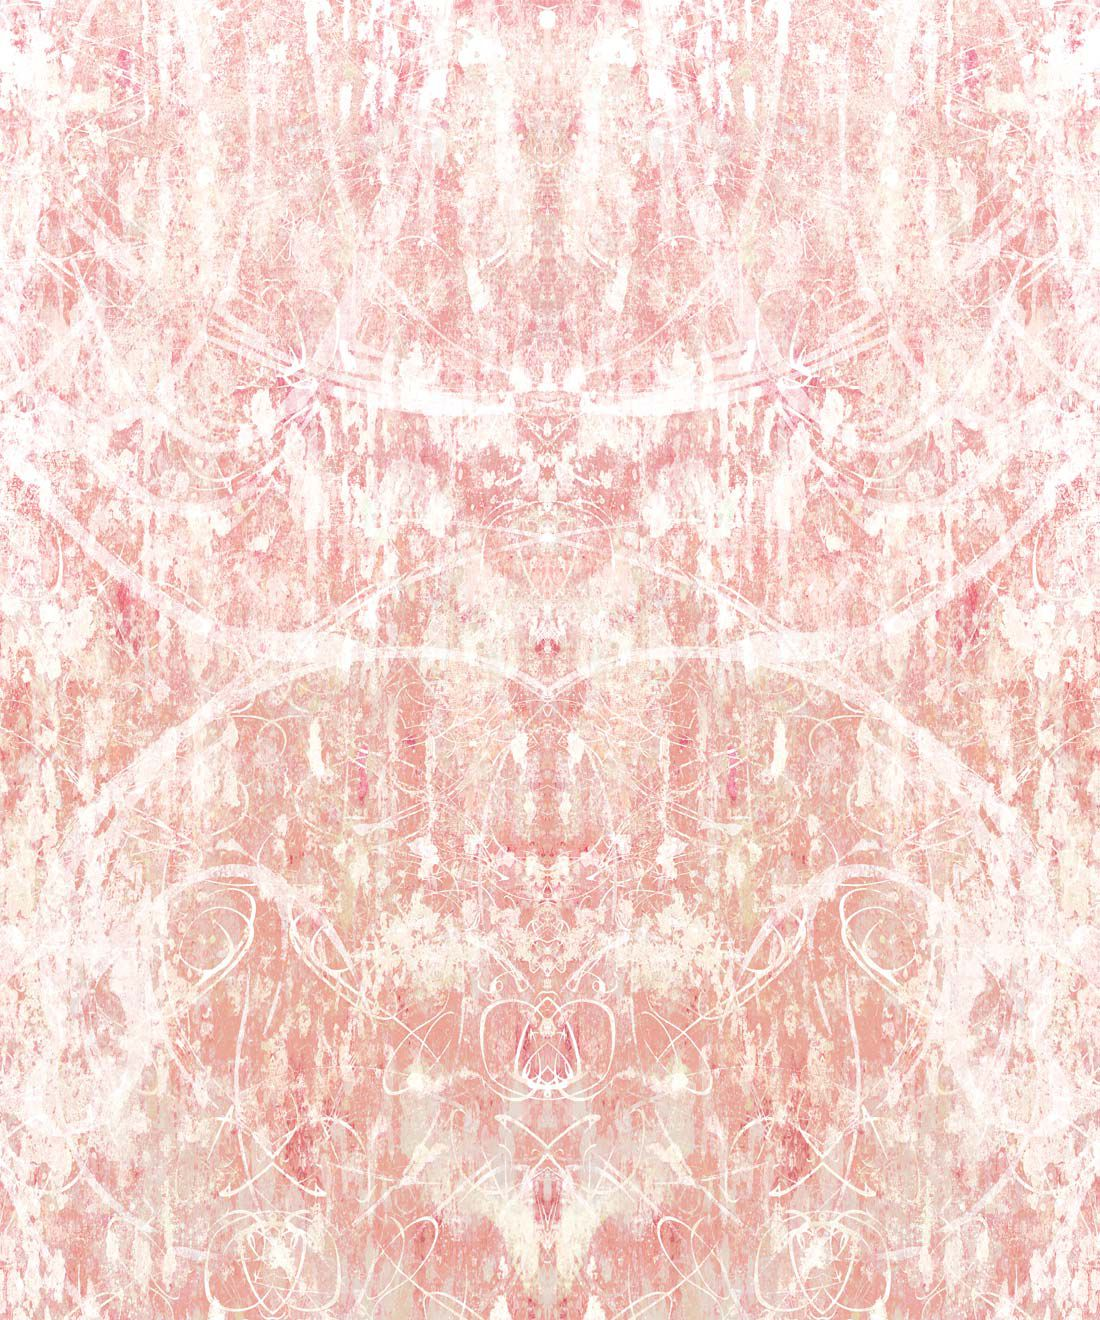 Hori Wallpaper by Simcox • Color Peach • Abstract Wallpaper • swatch